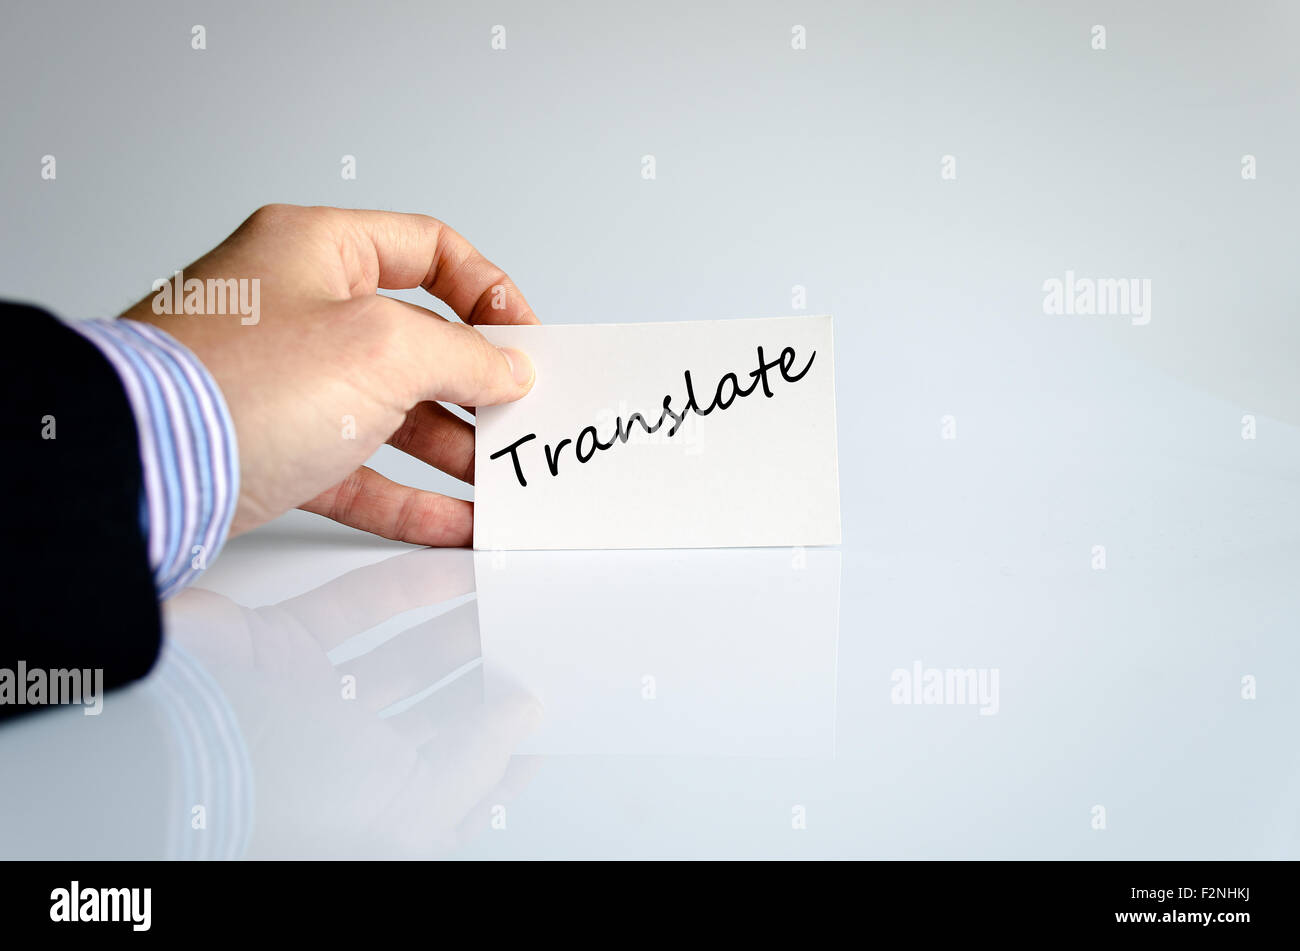 Translate Text Concept Isolated Over Stock Photos